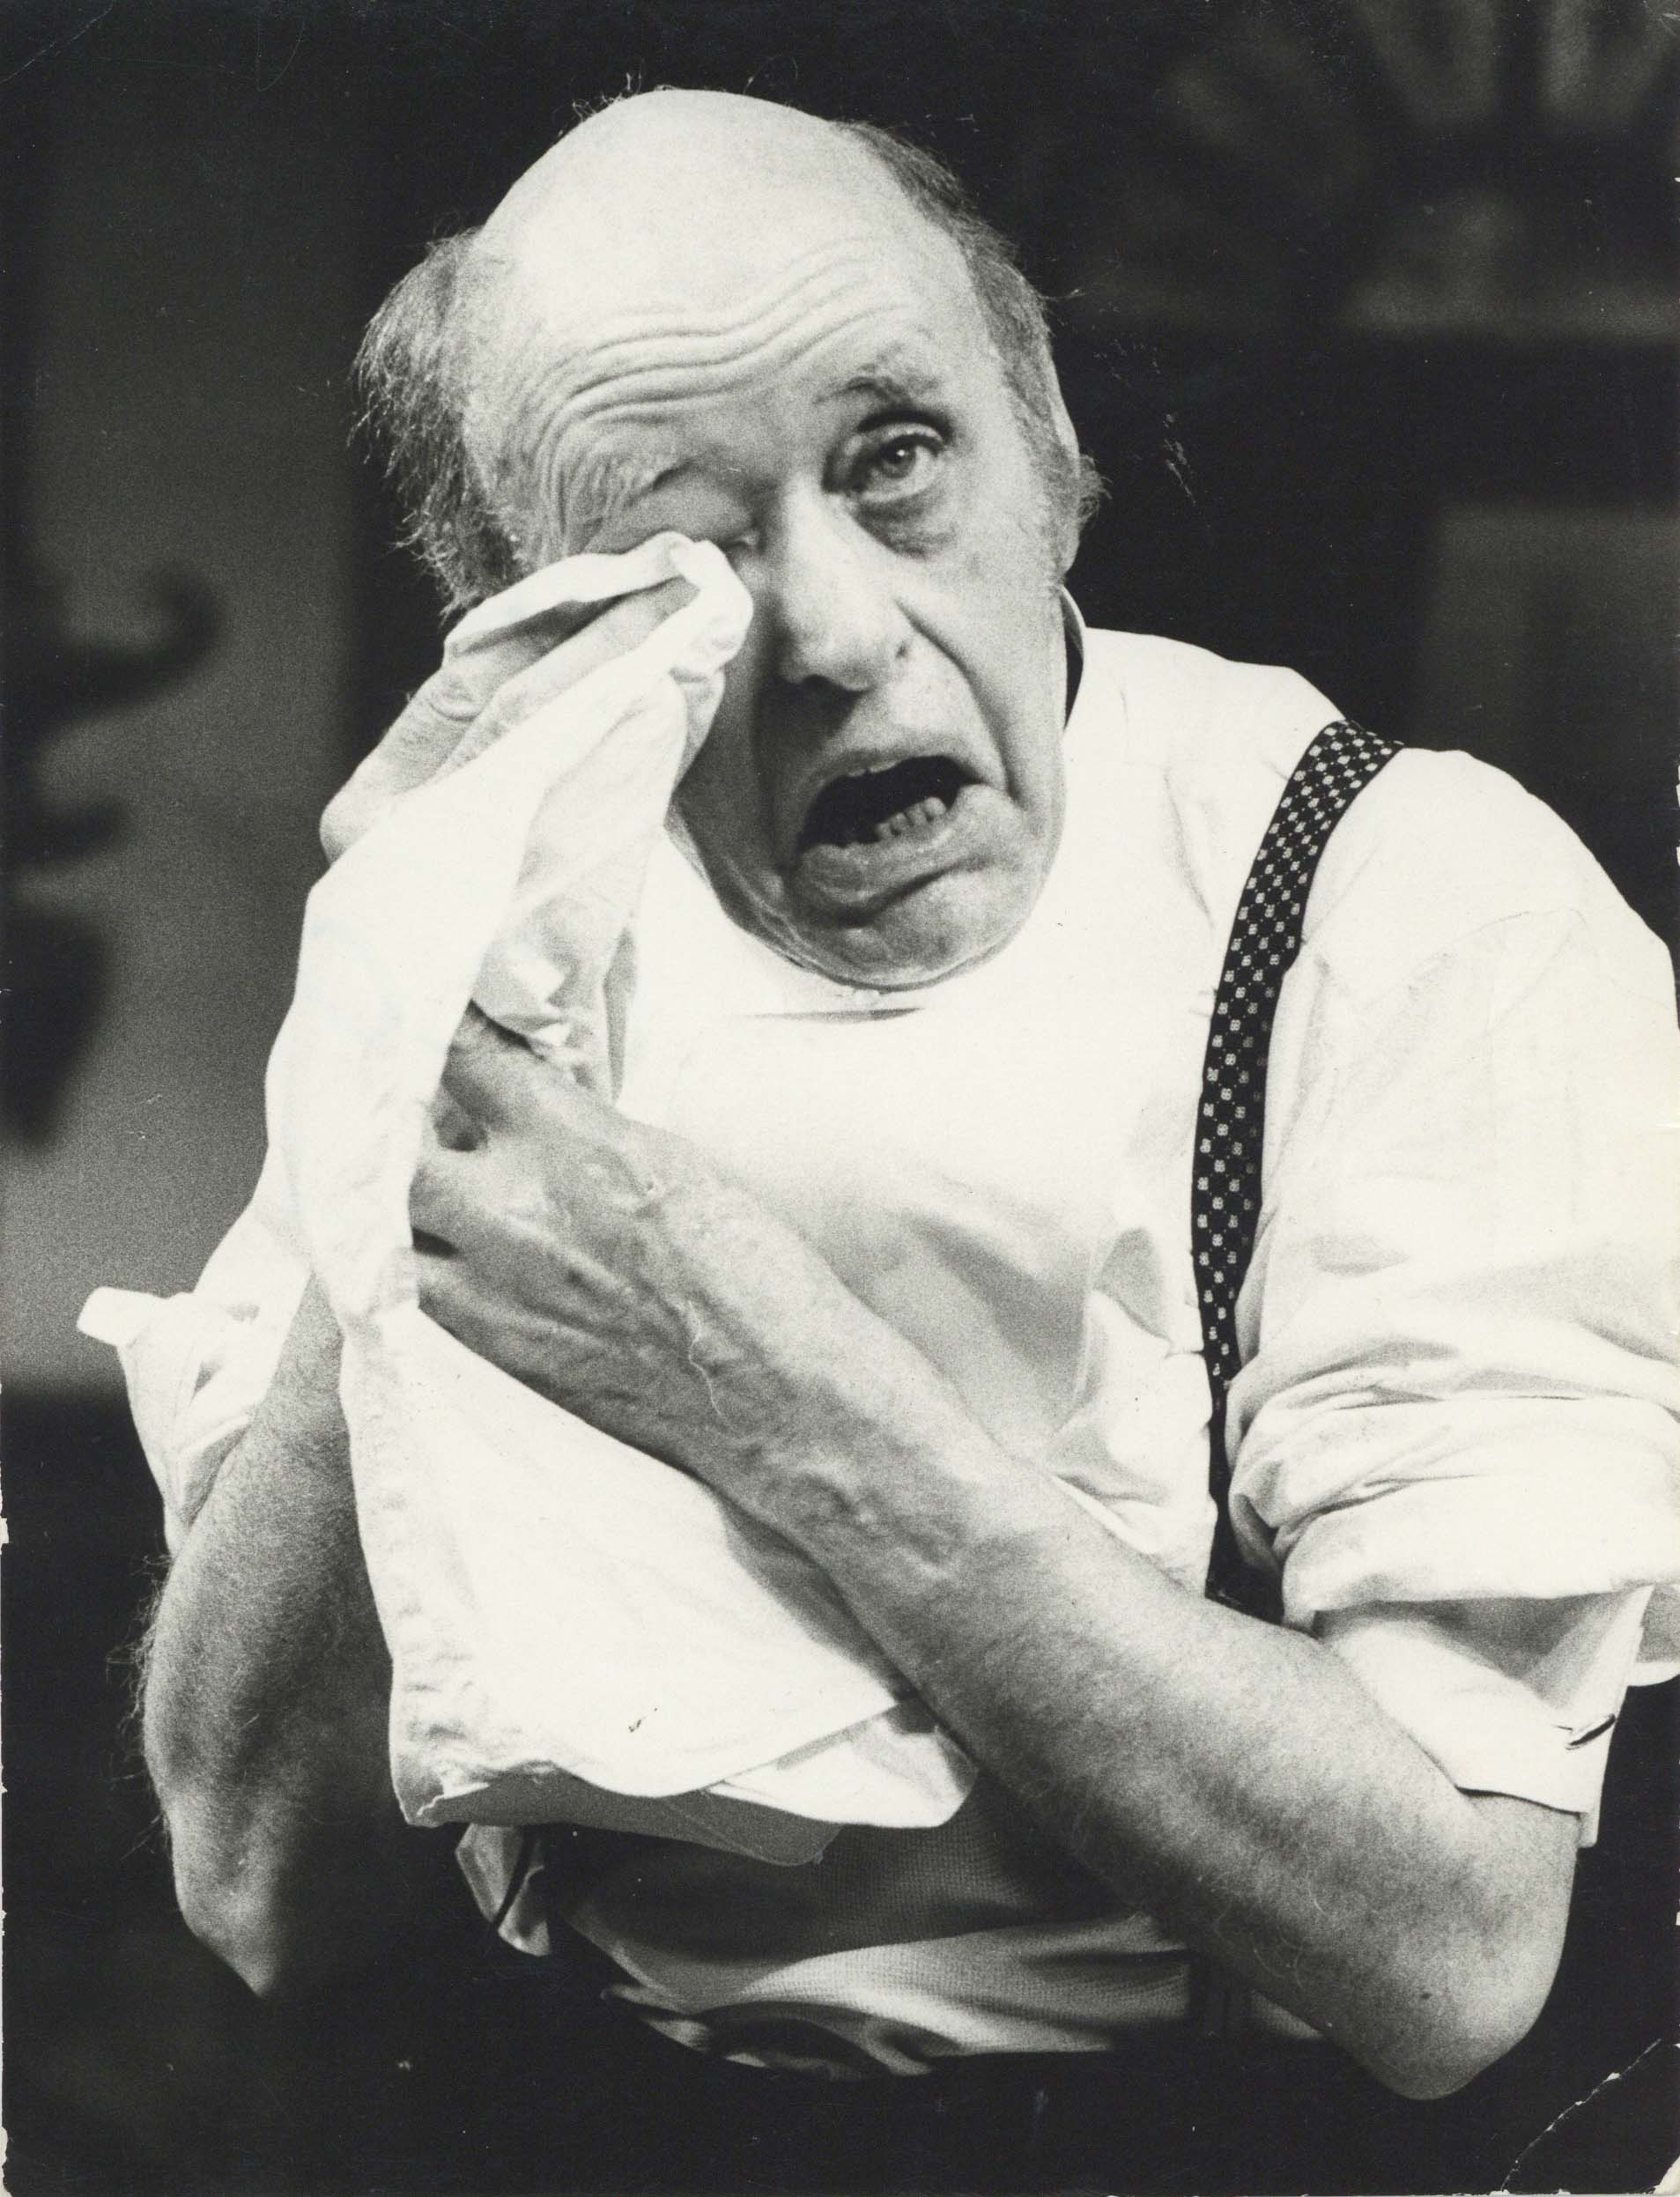 Photograph The Magistrate - Photographer unknown - 1969 - - Alastair Sim - CFT WSRO